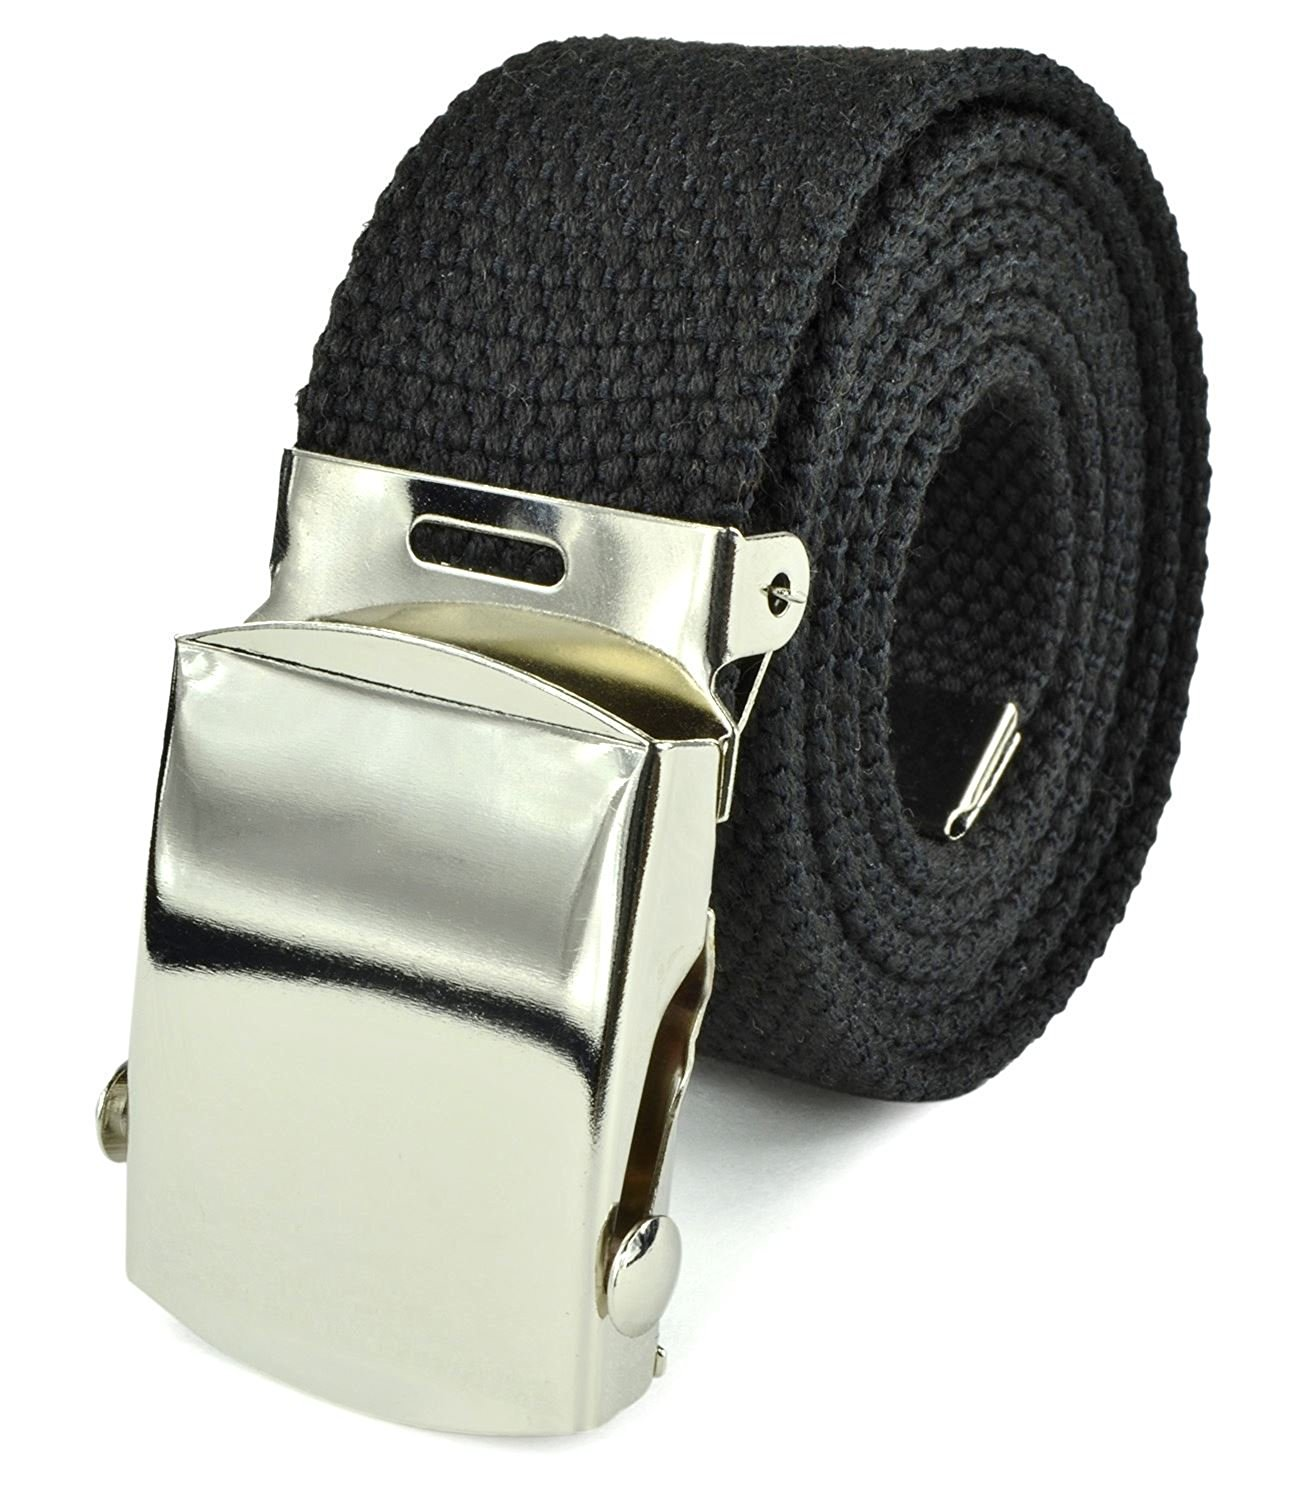 Belle Donne- Unisex Men/Women Heavy Duty Canvas Military Style Belt-Black